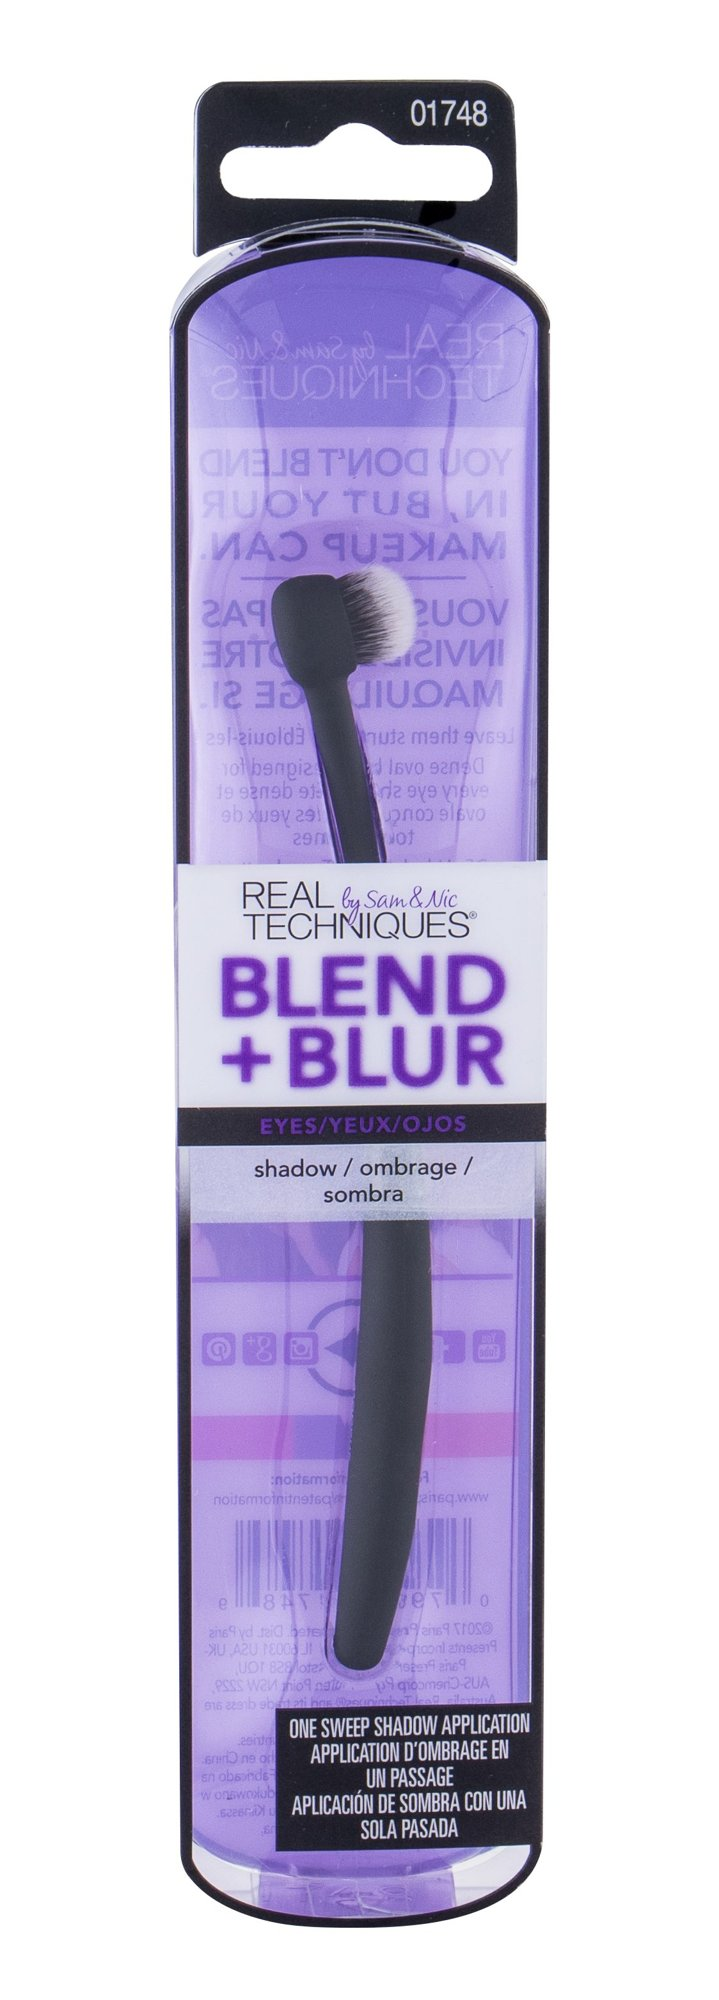 Real Techniques Blend + Blur Shadow Brush (Štětec, W, 1 ks)